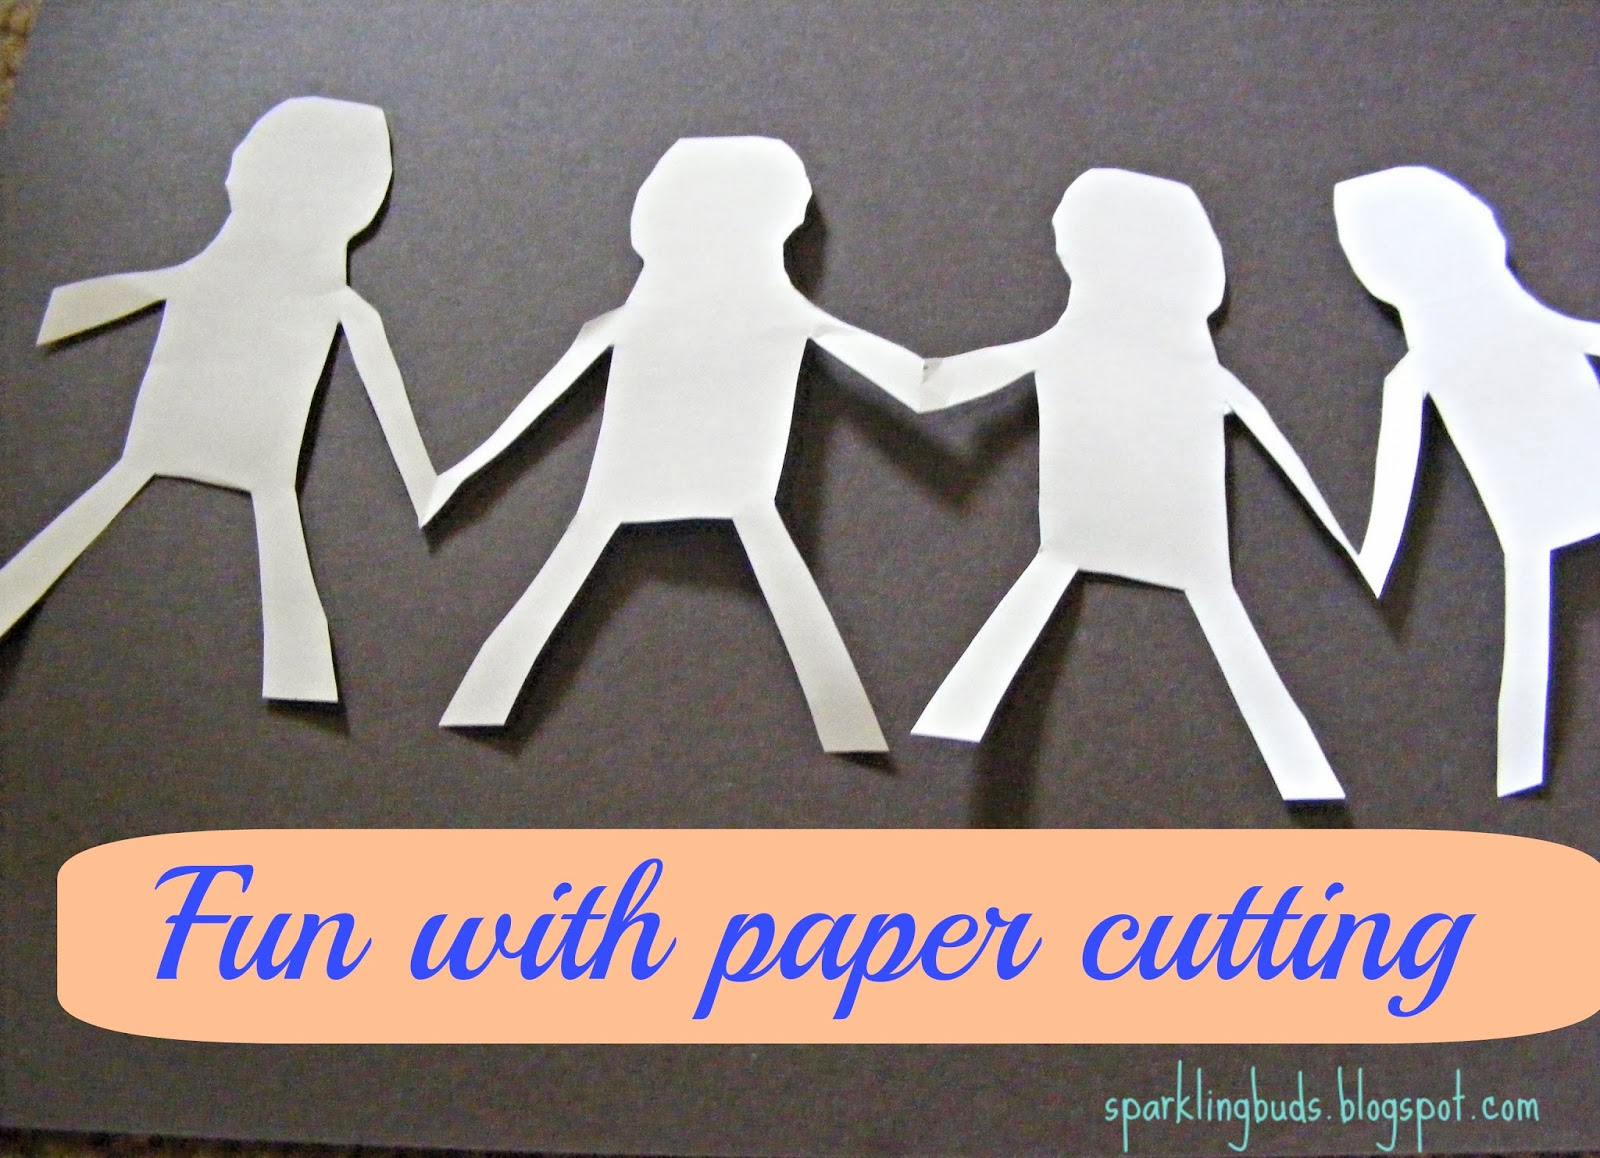 Papercutting Fun And Easy For Kids Sparklingbuds